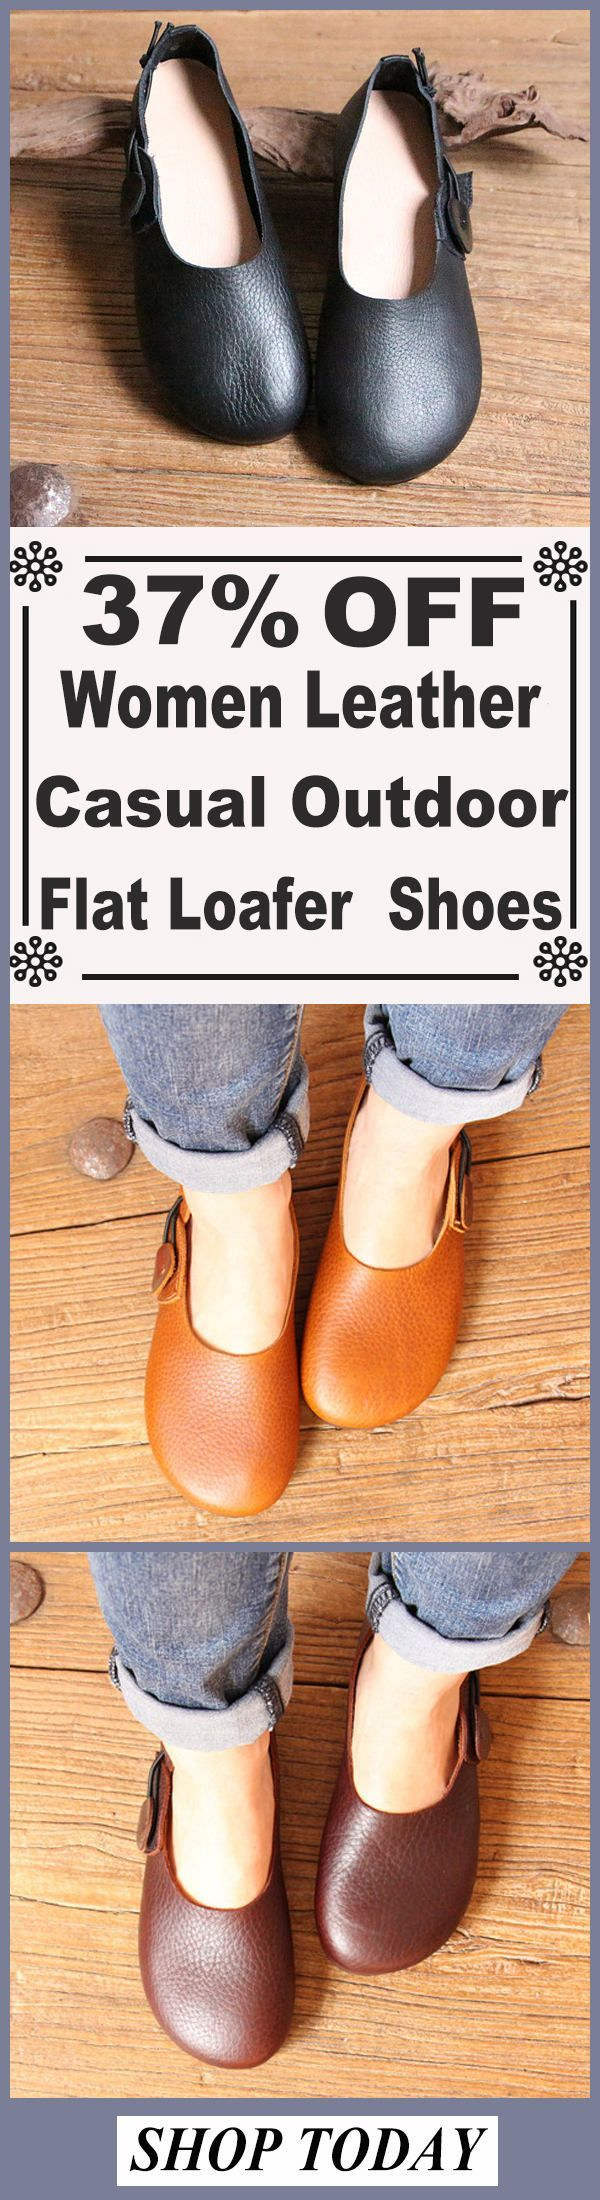 SOCOFY Women Leather Casual Outdoor Soft Slip On Flat Loafer Shoes#shoes #mystyle #shopping